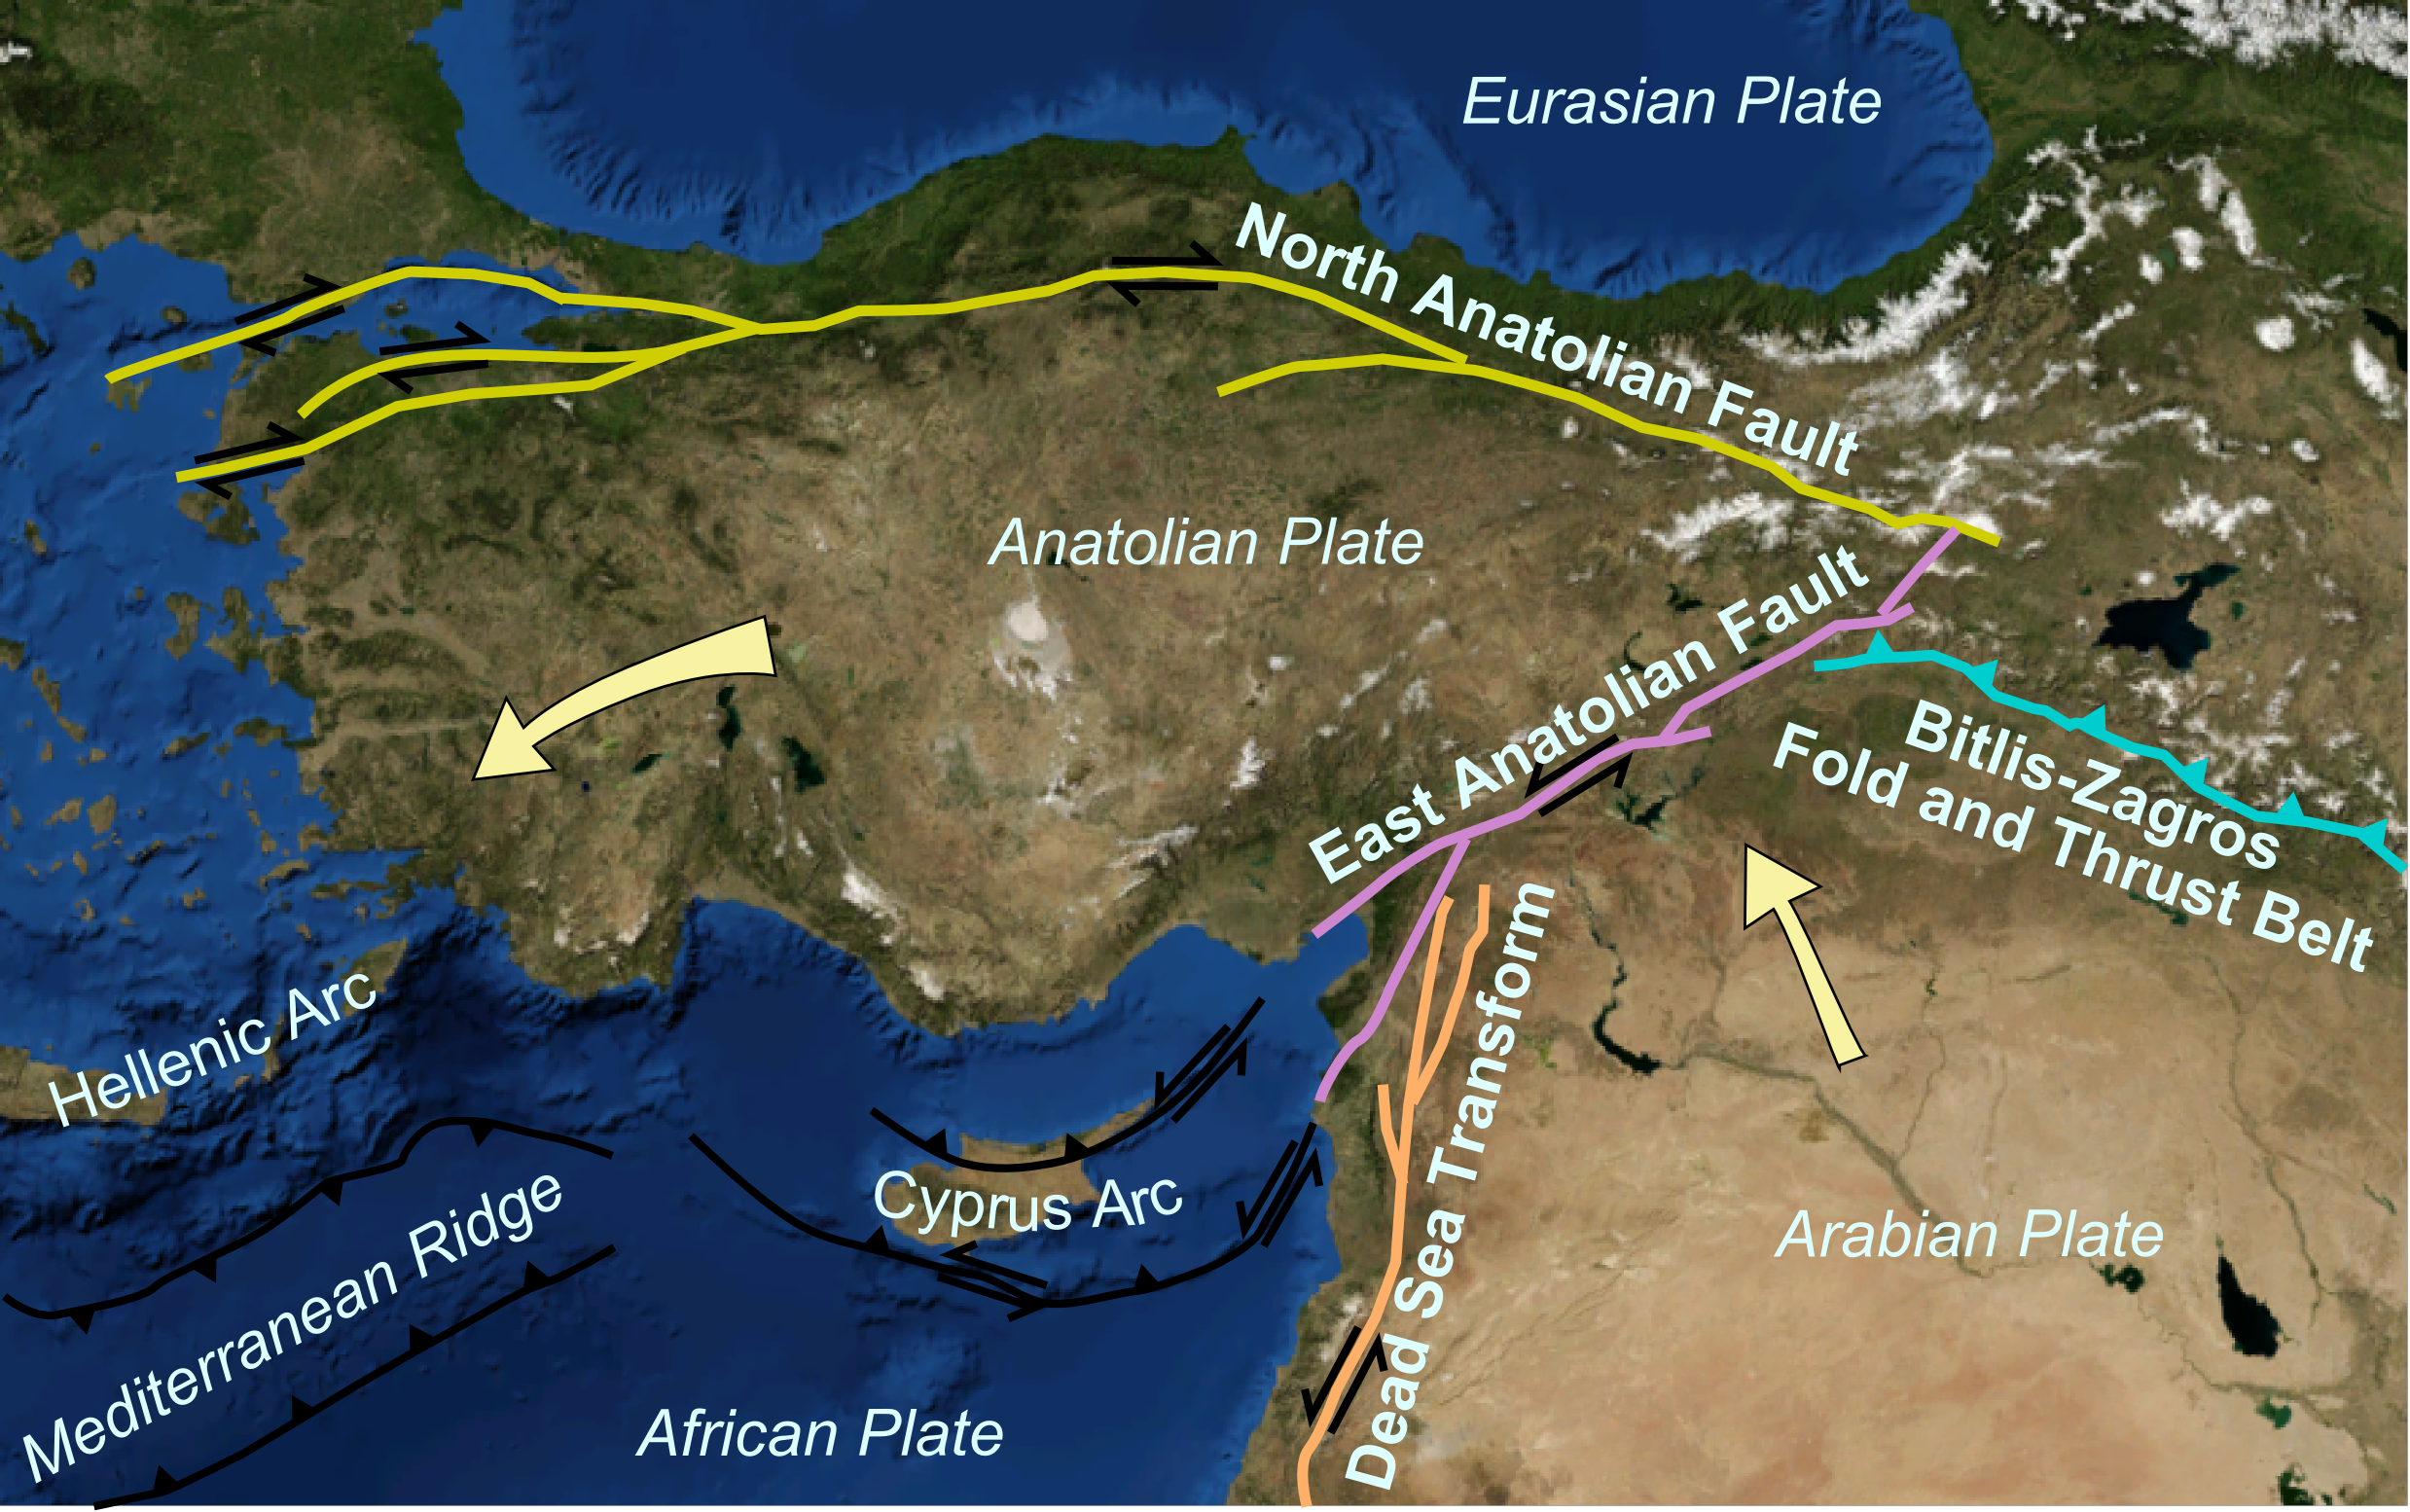 https://upload.wikimedia.org/wikipedia/commons/f/f8/Anatolian_Plate.png